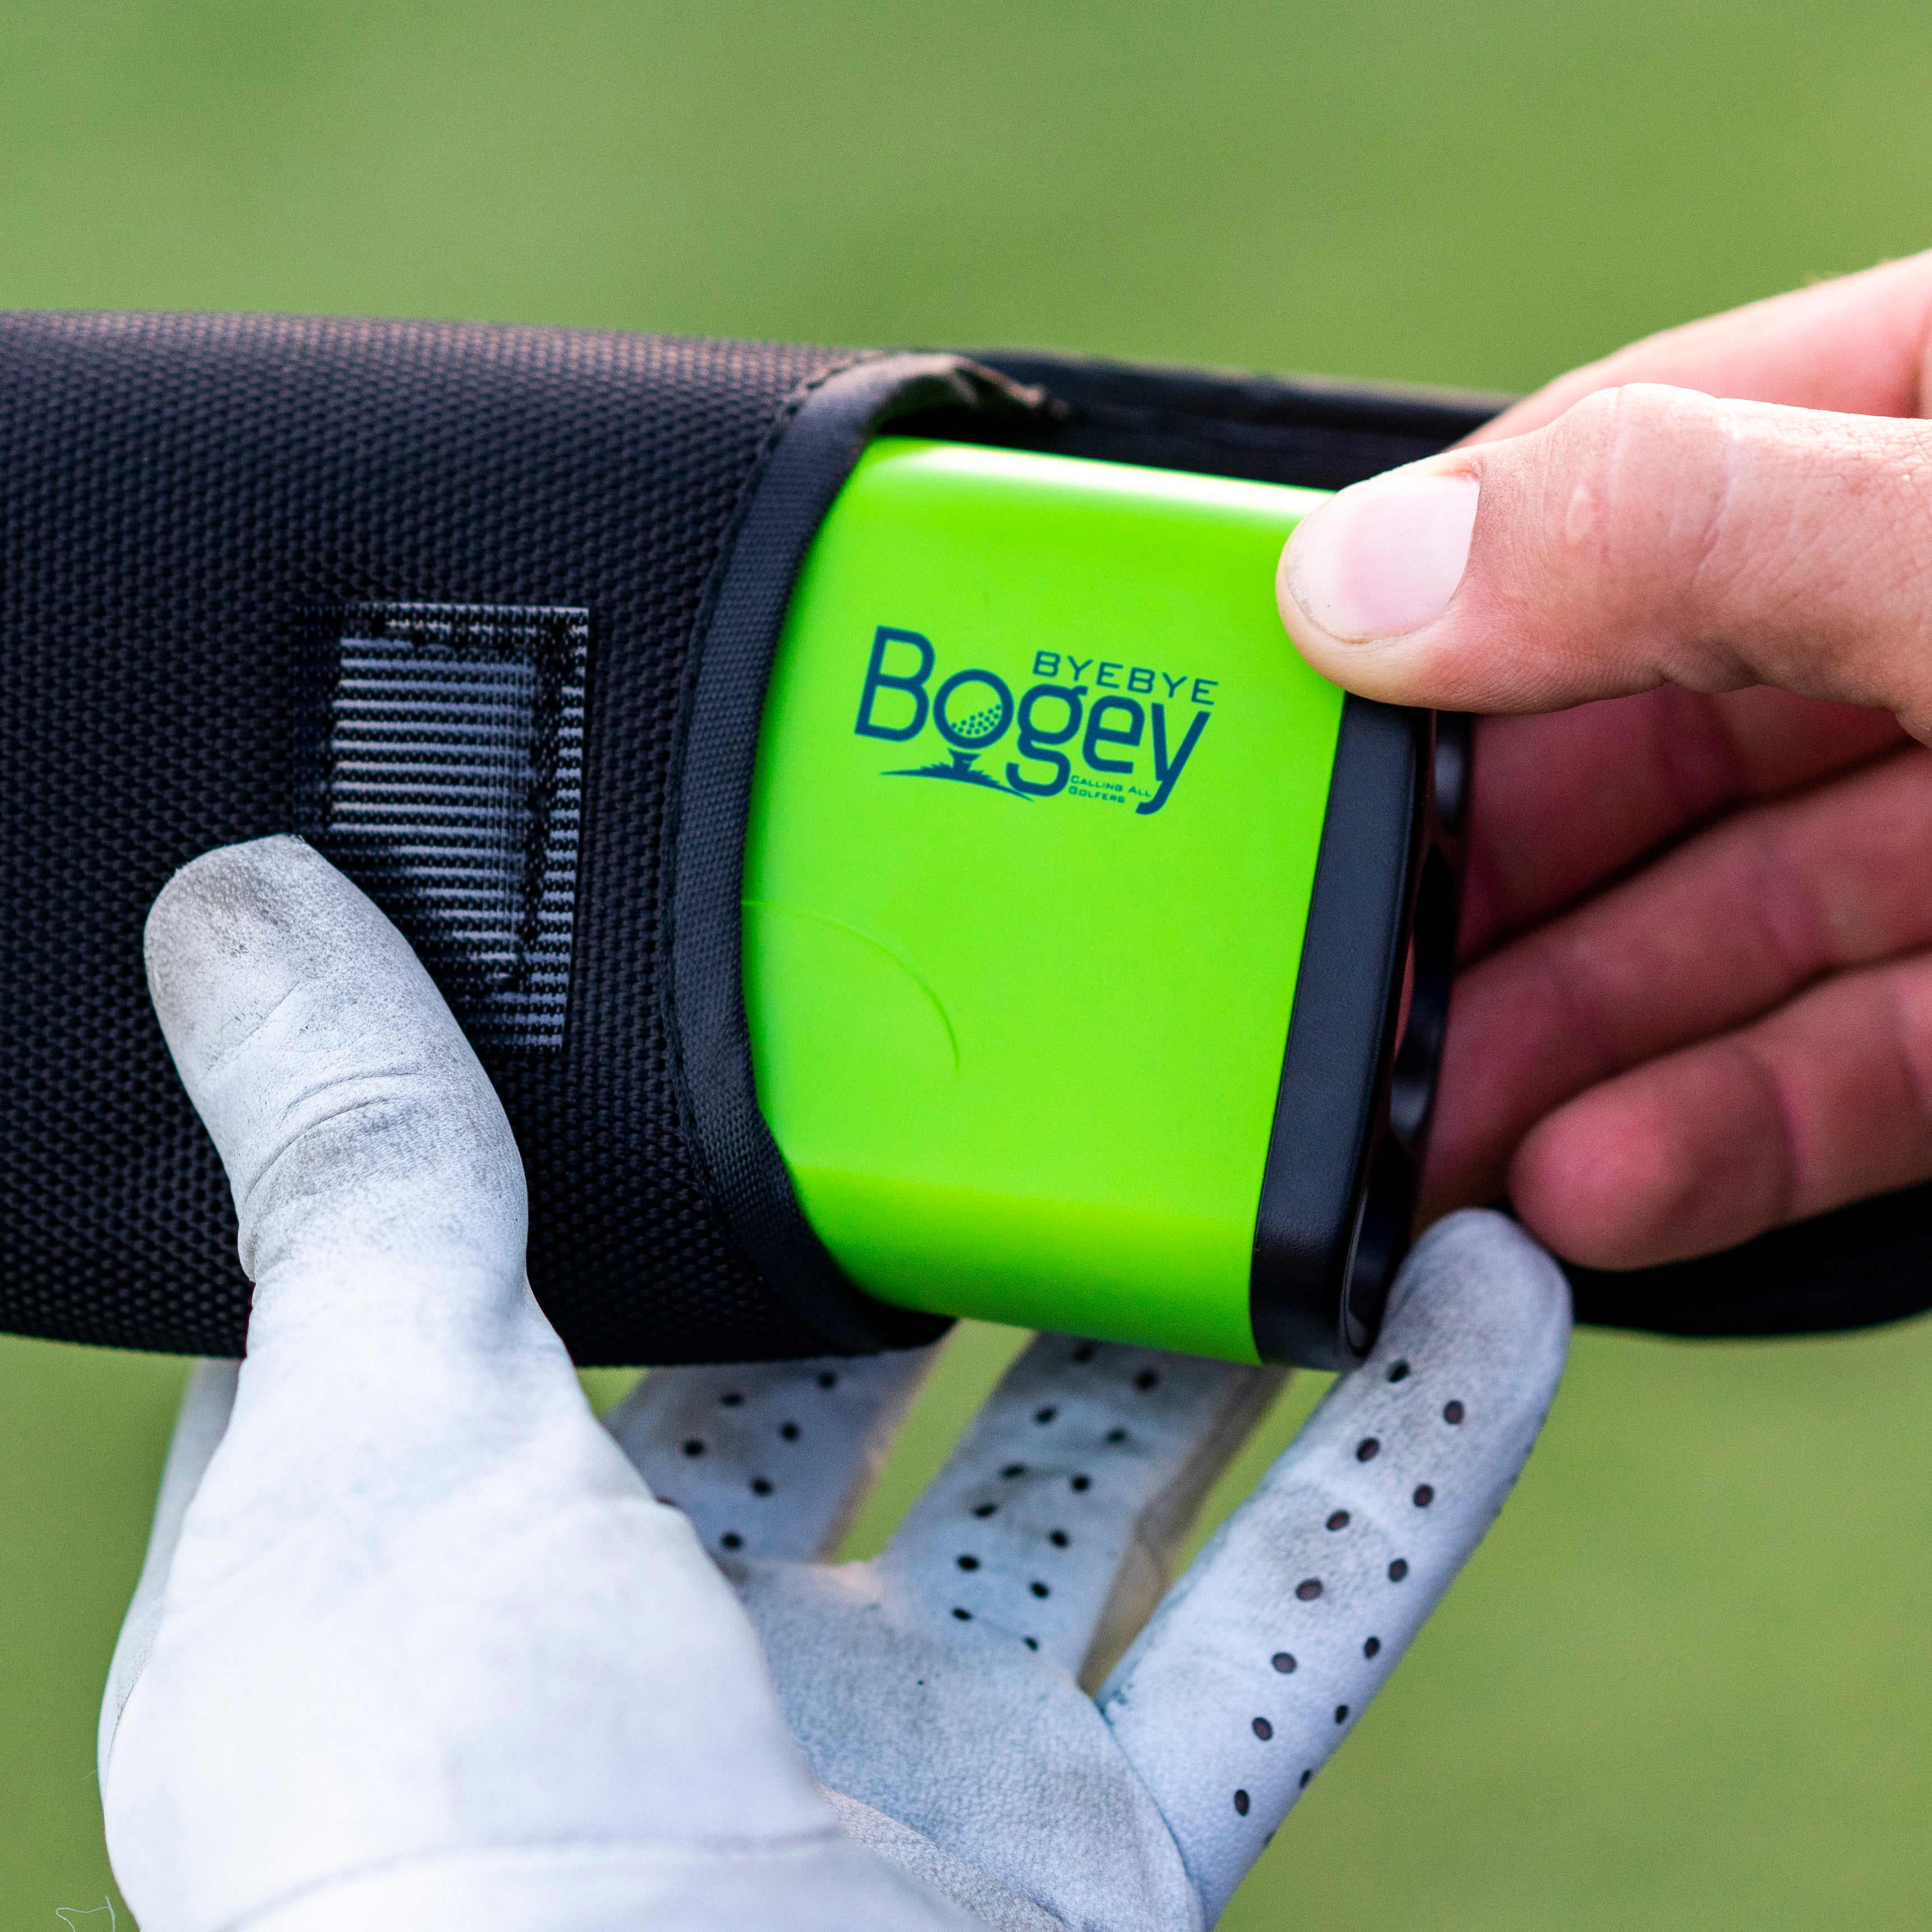 Bye Bye Bogey - Pro 600 Laser Golf Rangefinder with Jolt & Slope Technology